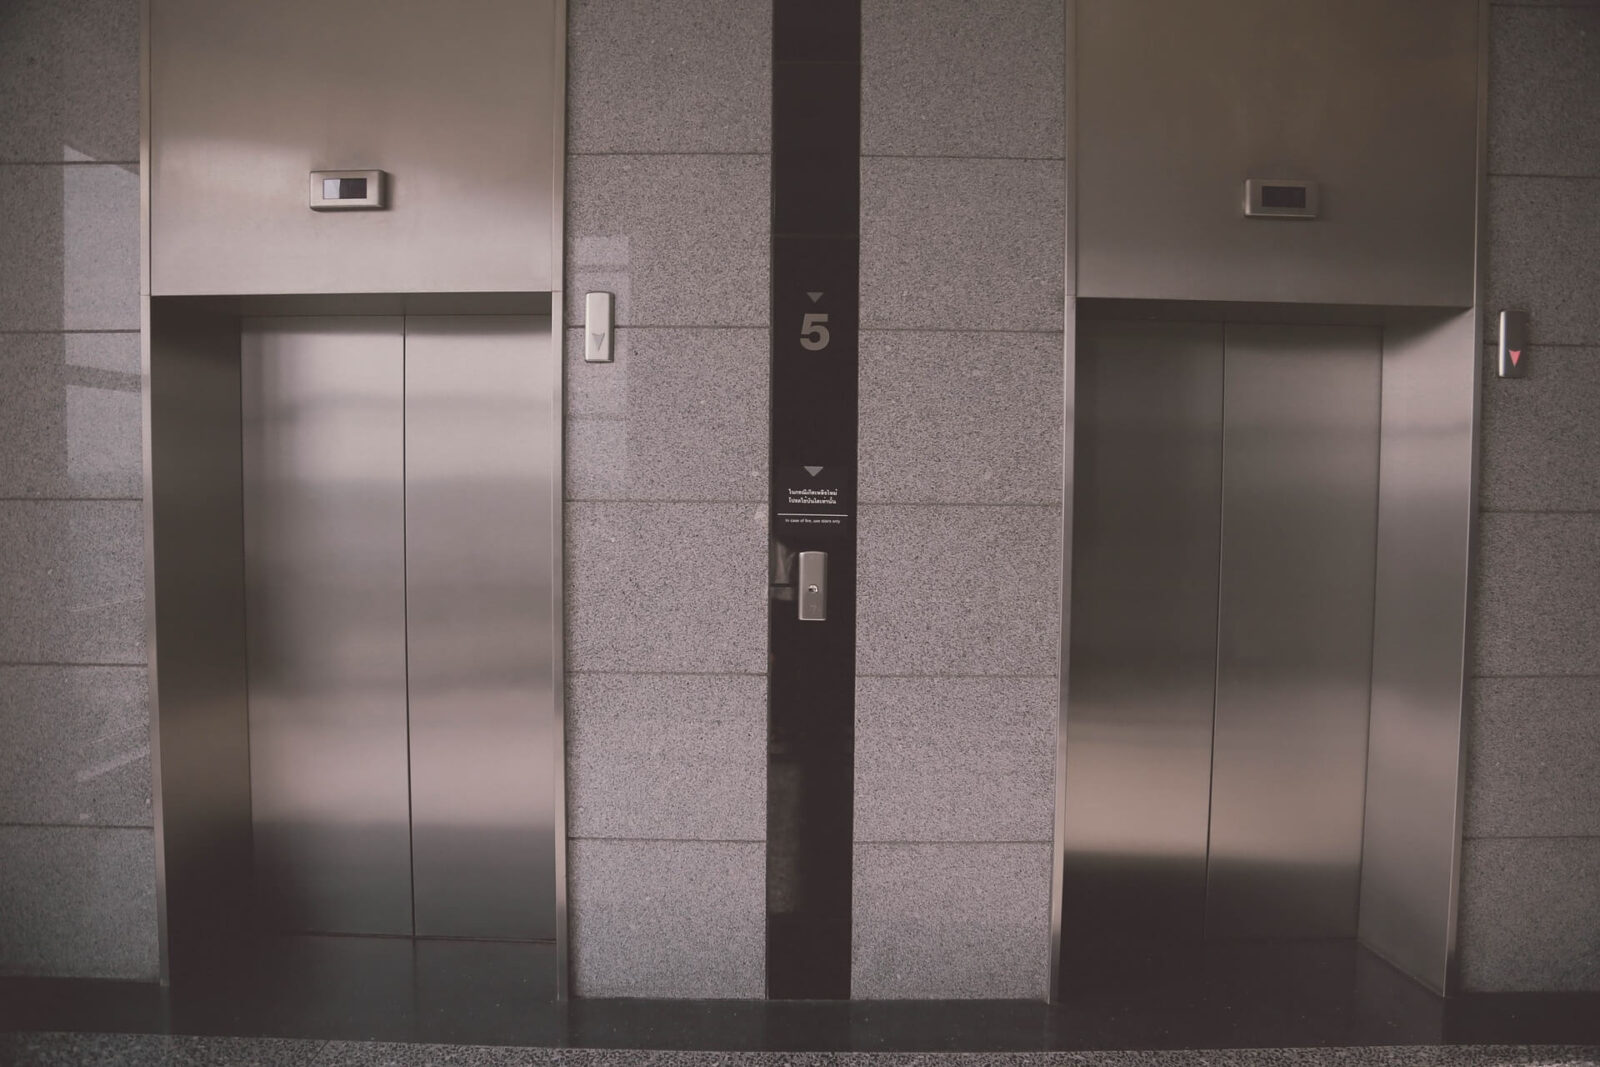 MBA Elevator Pitch